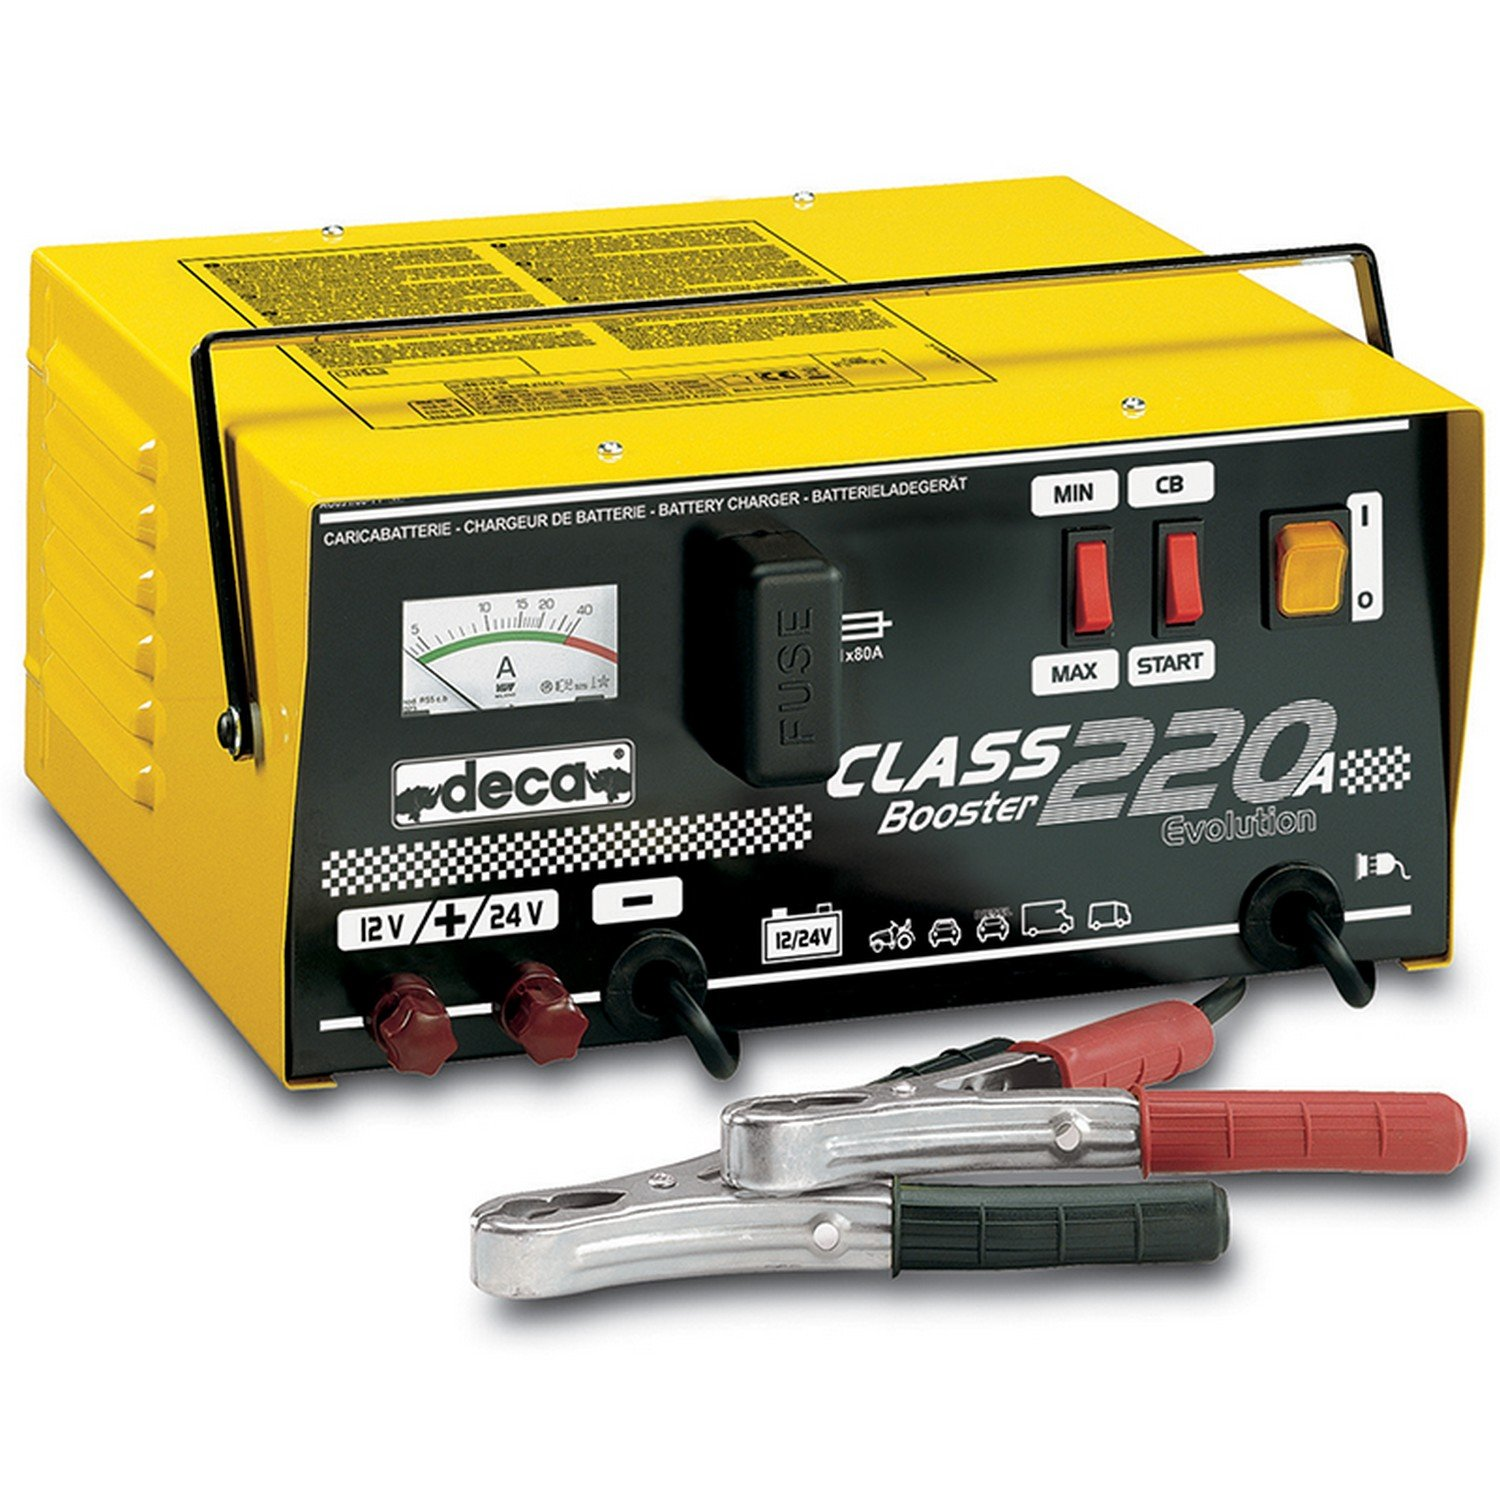 Deca 0400206 Deca Charger Class Booster 220 A 341000